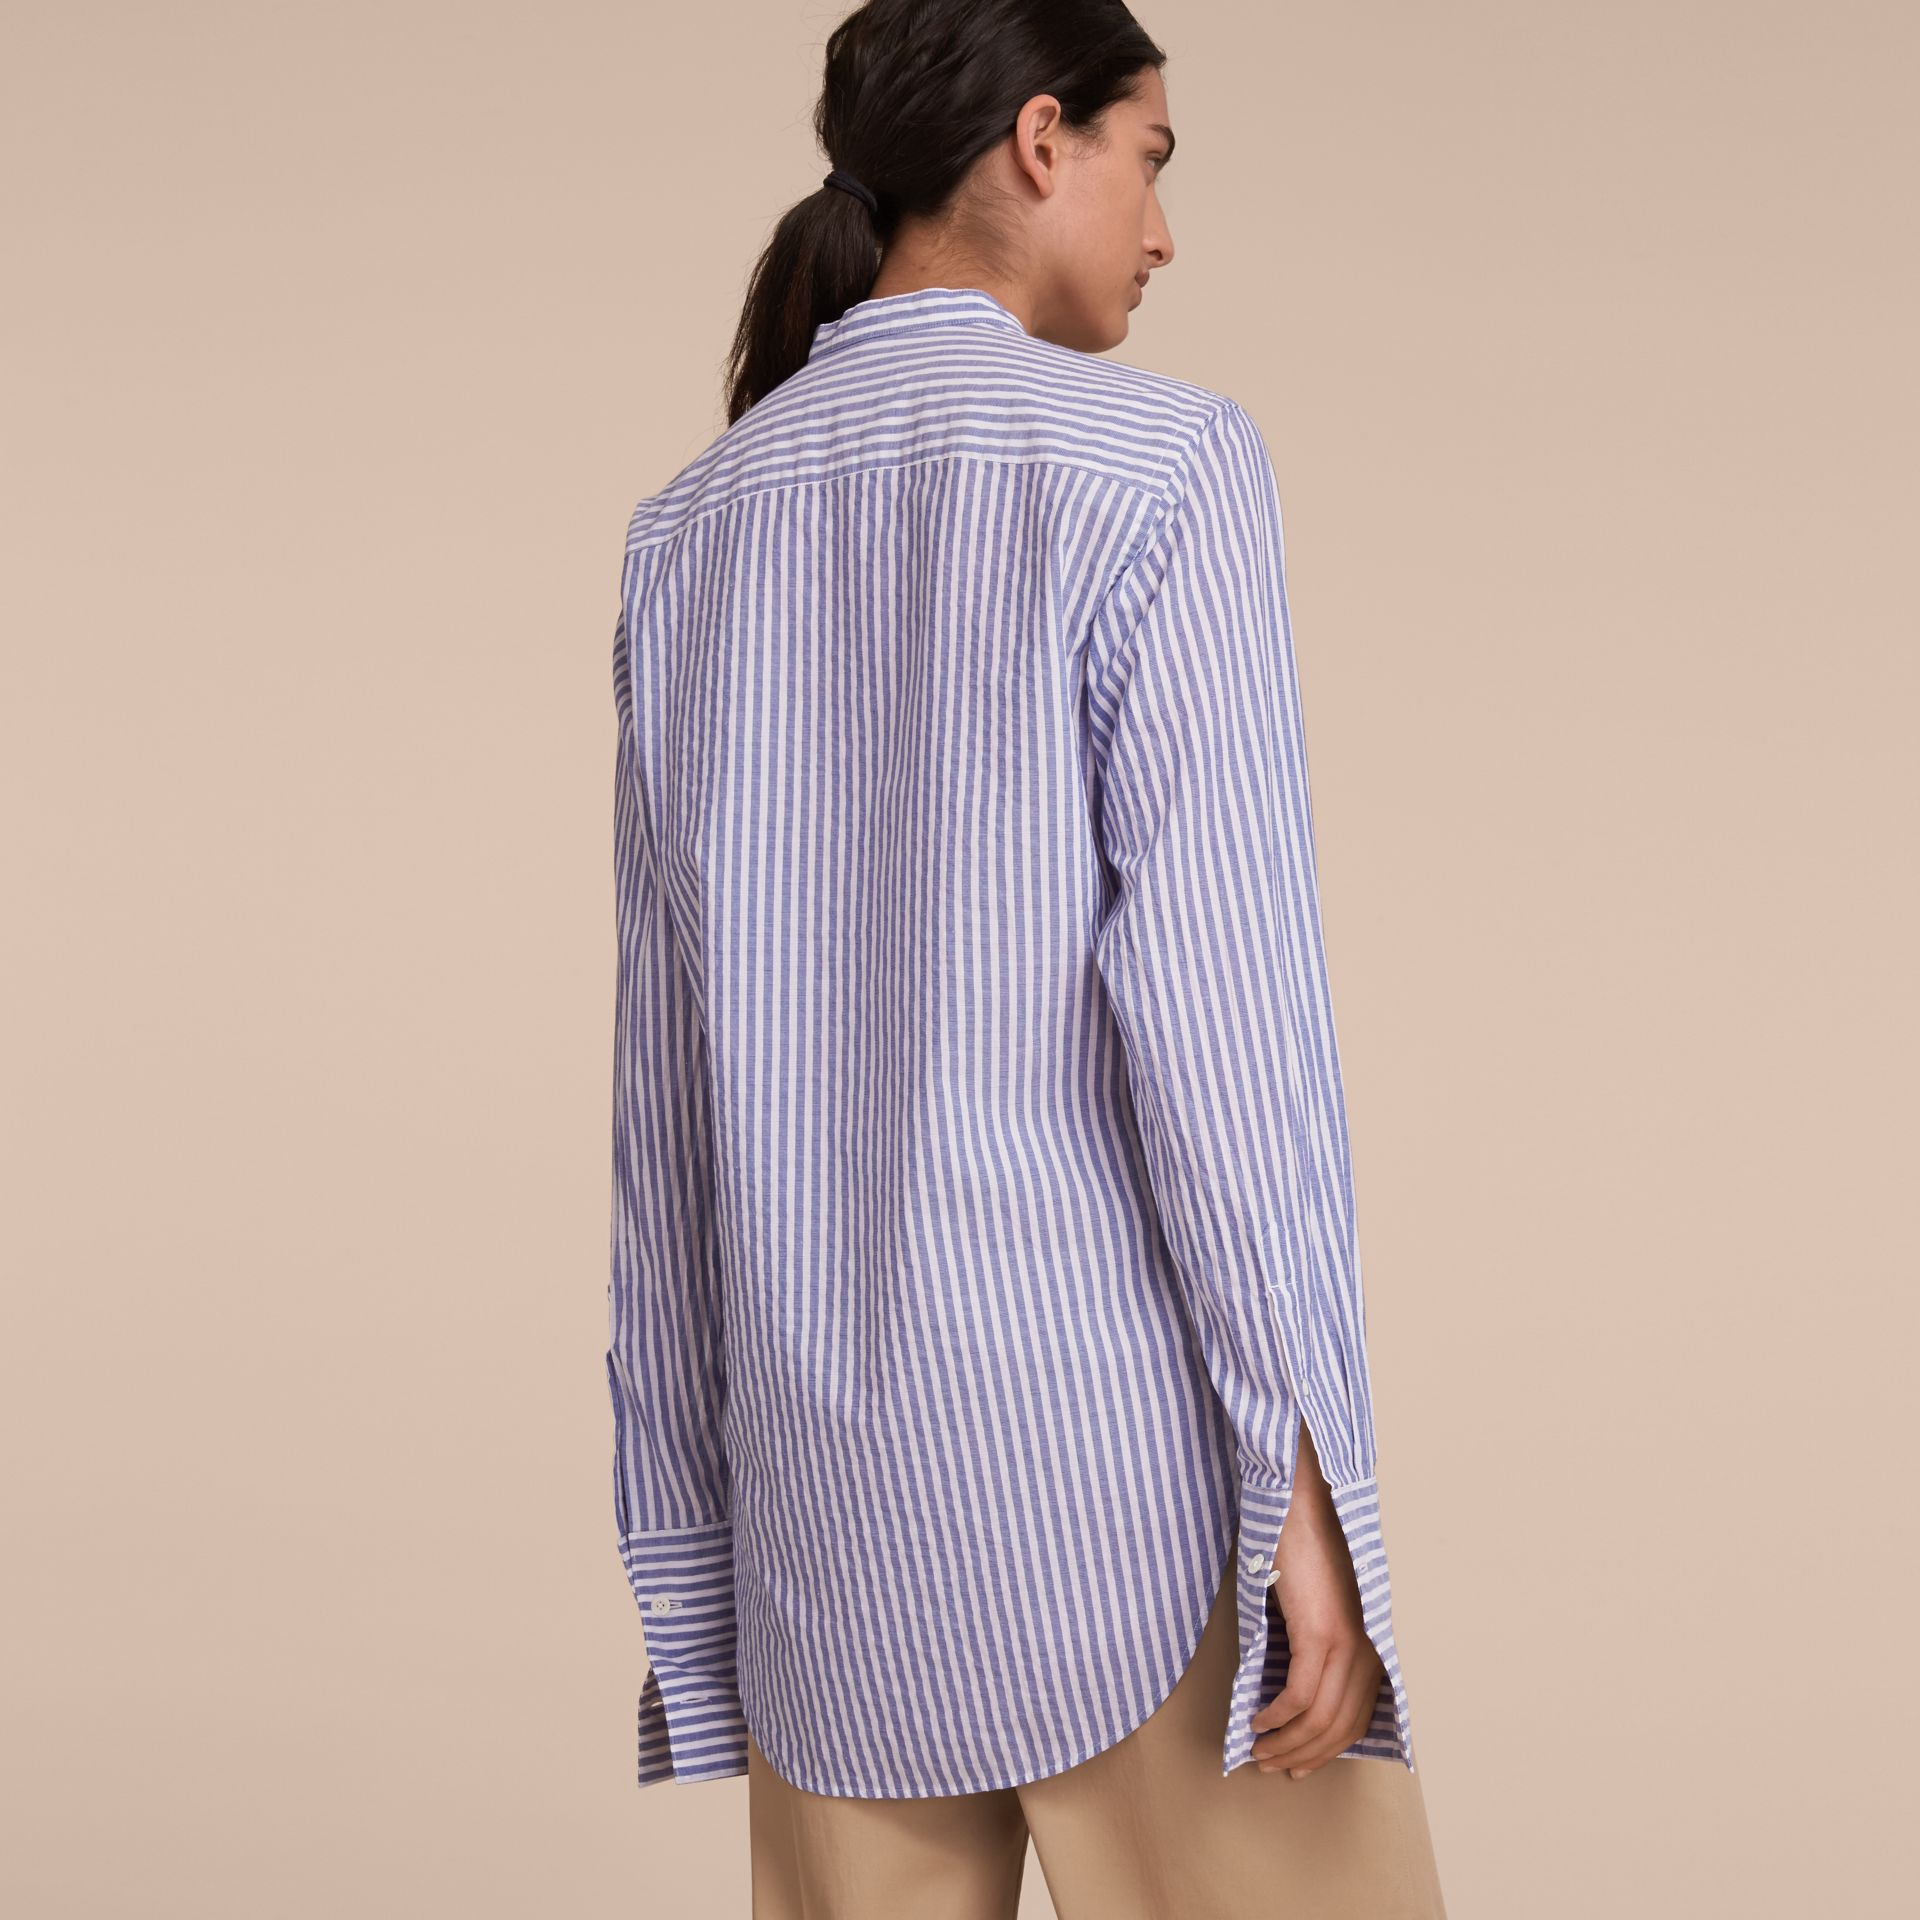 Unisex Grandad Collar Pleated Bib Striped Cotton Shirt in Pale Blue/white - Women | Burberry - gallery image 5